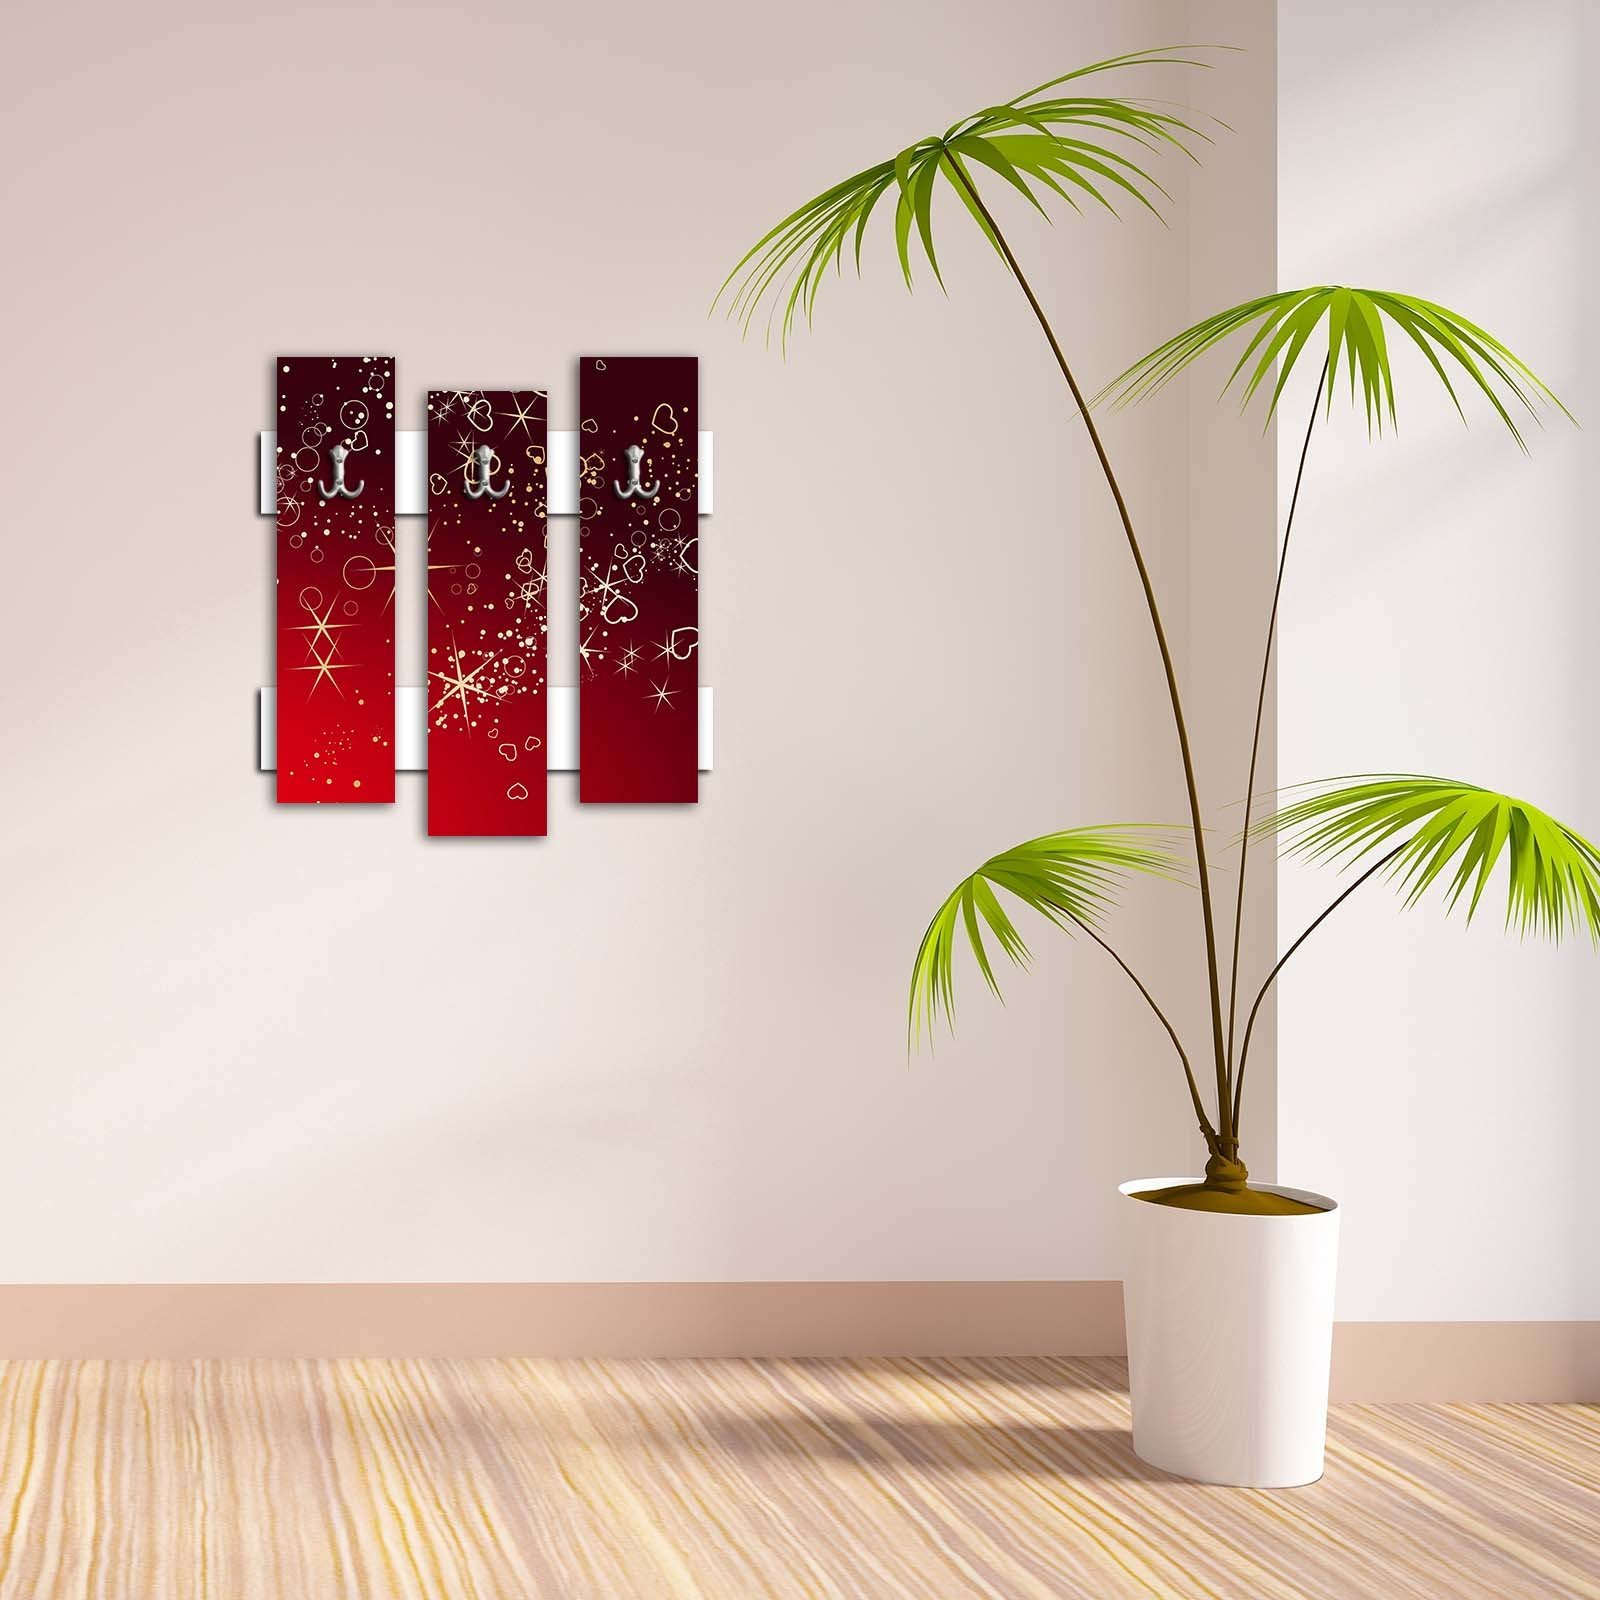 Decorative Wall Hook 3 Pcs Metal Key Holder 100% MDF Mounted Hanging Home Decor, Perfect for Foyers Entryway, Door Coats Hats Towels Scarfs Bags Star Heart Claret Red Merry Chrismas Happy New Year